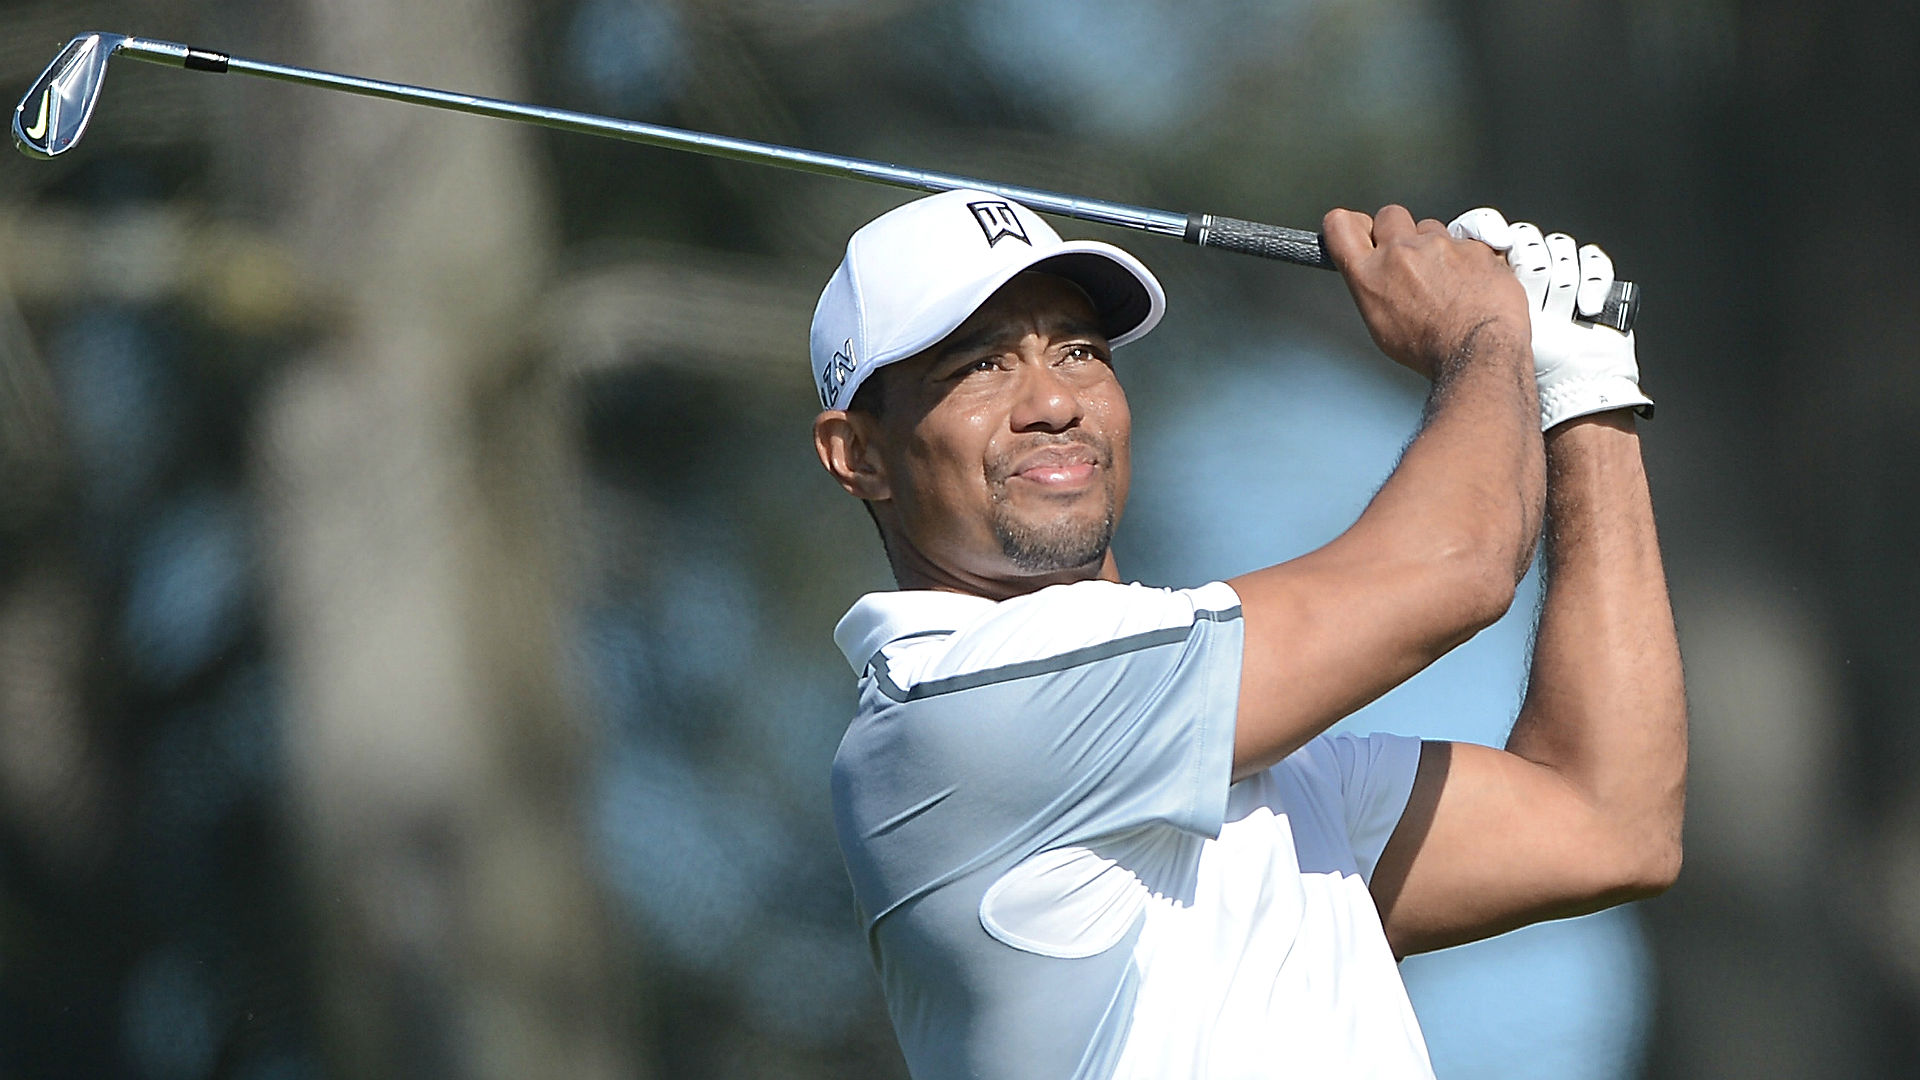 Las Vegas can't wait for Tiger Woods to play again